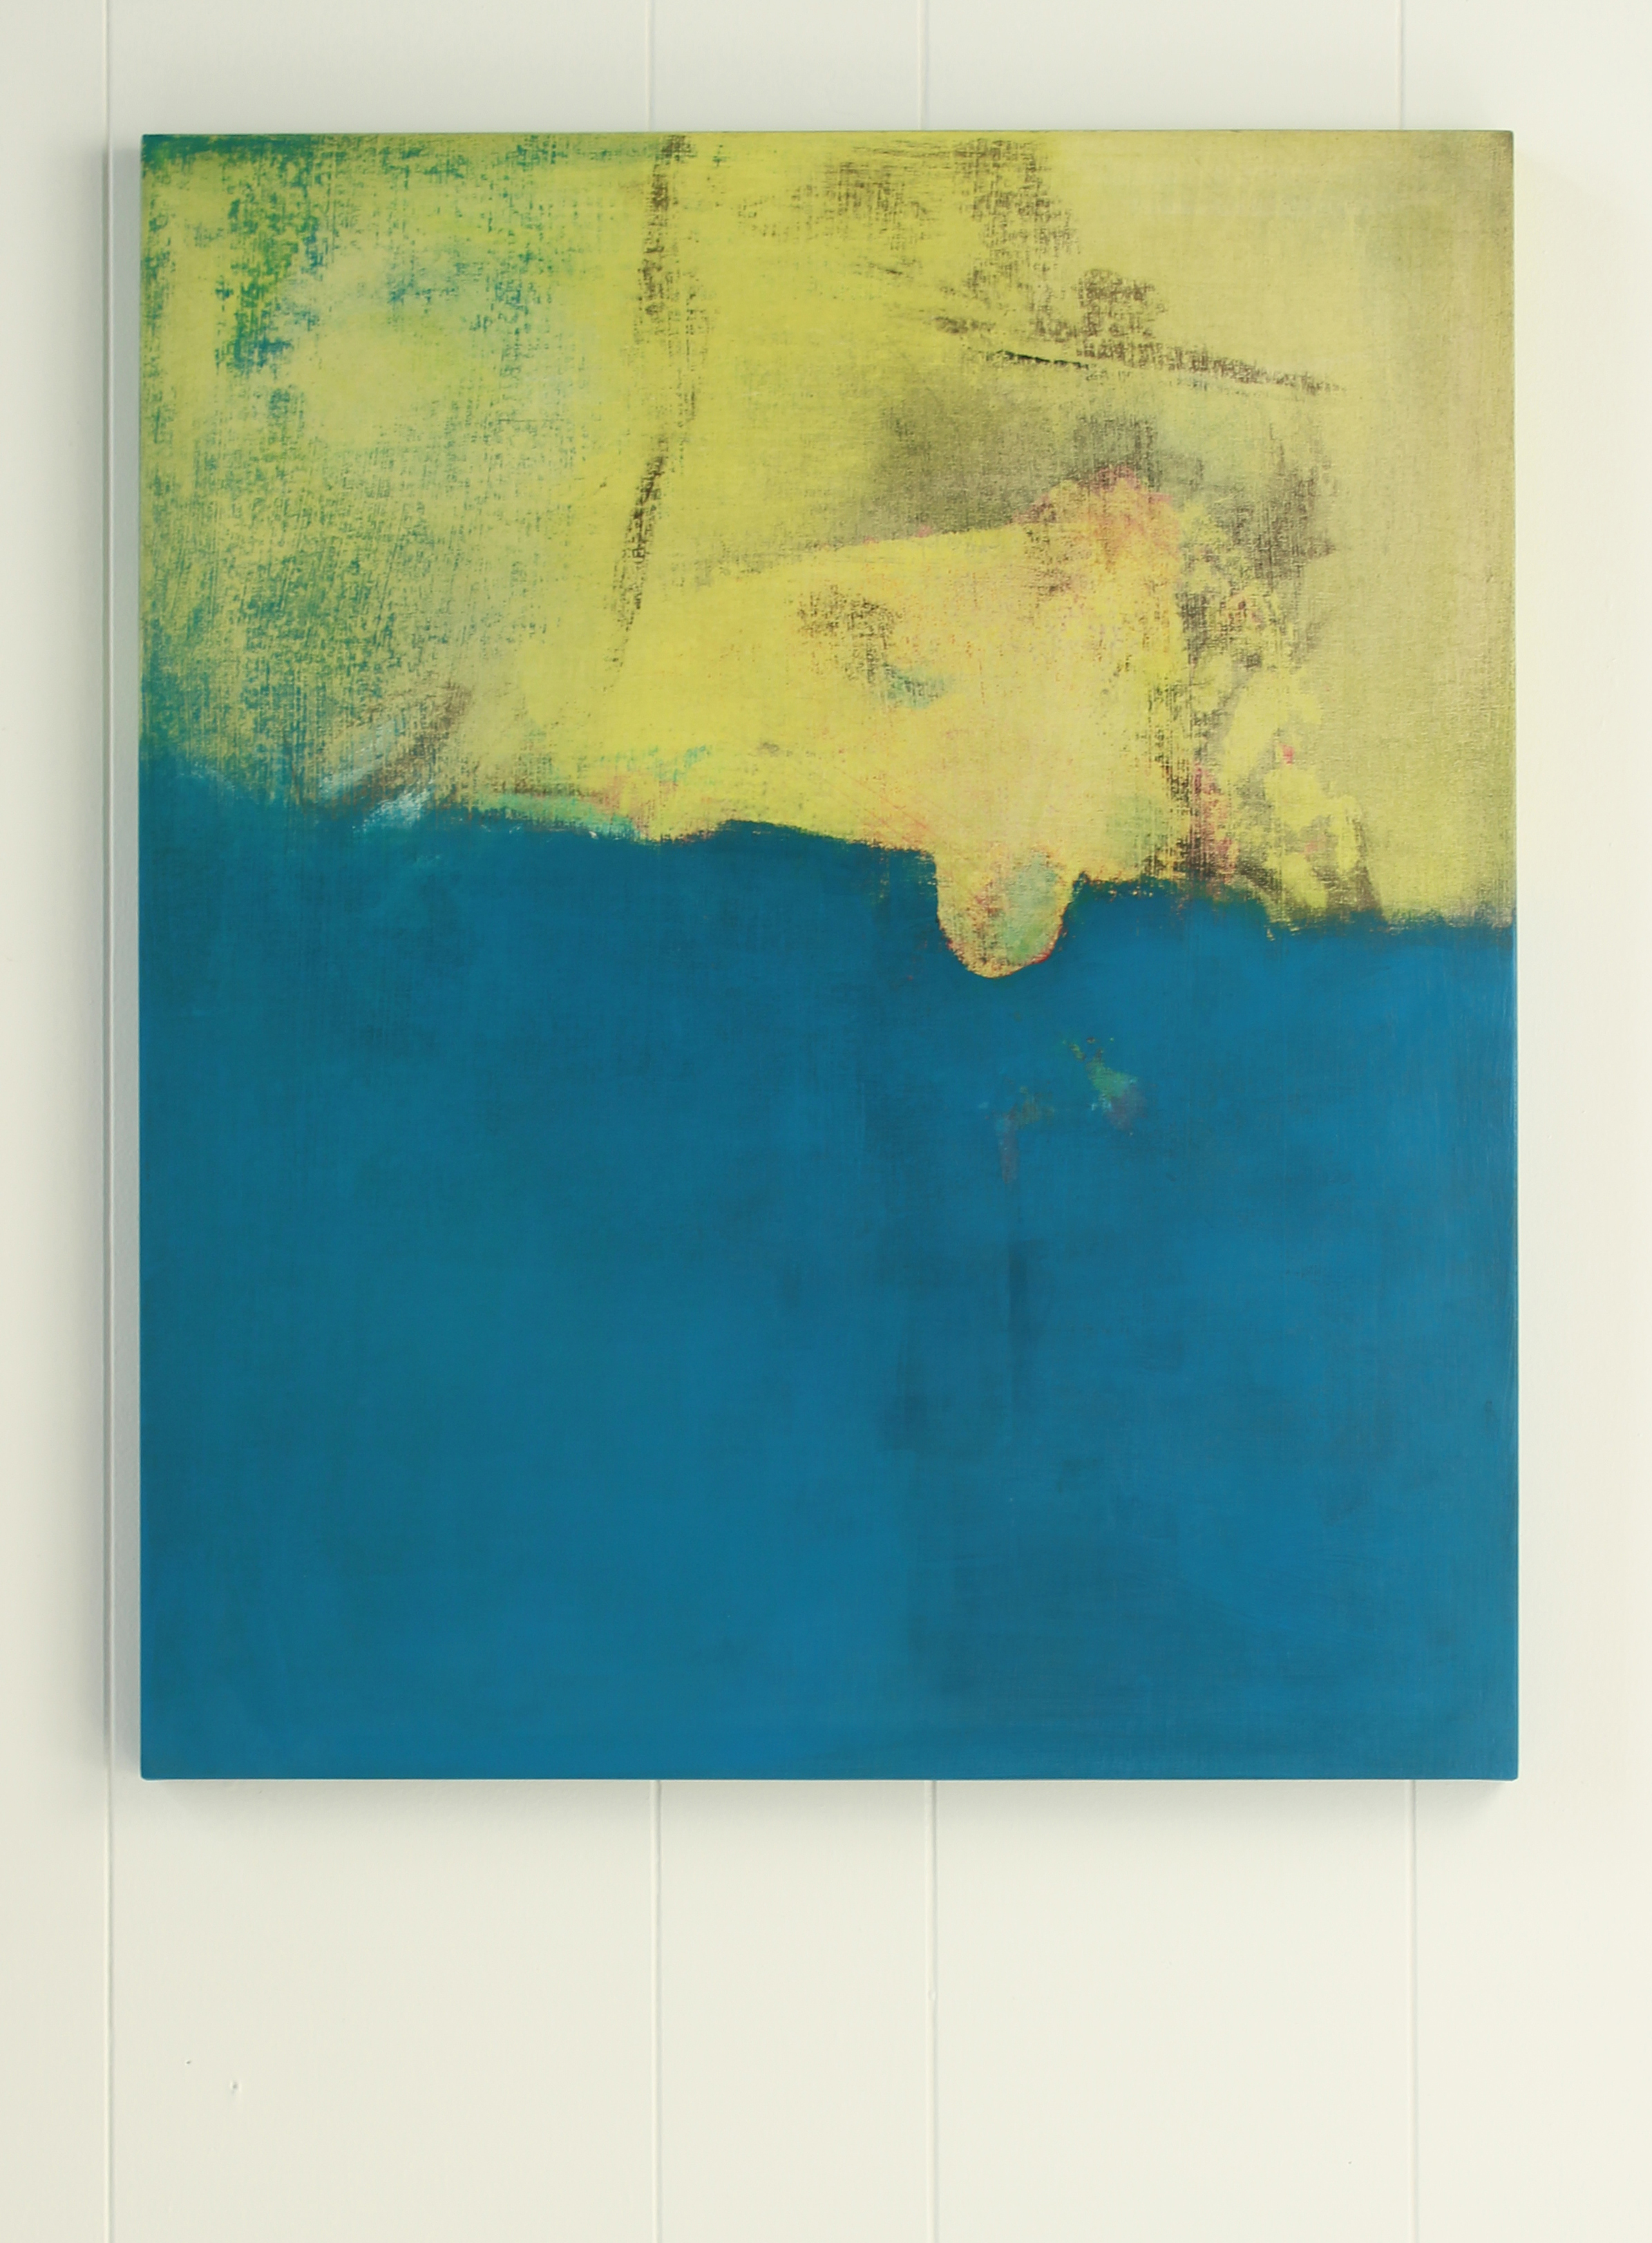 abstract painting (acrylic and gesso on muslin covered board) with dominant colours in blue and yellow